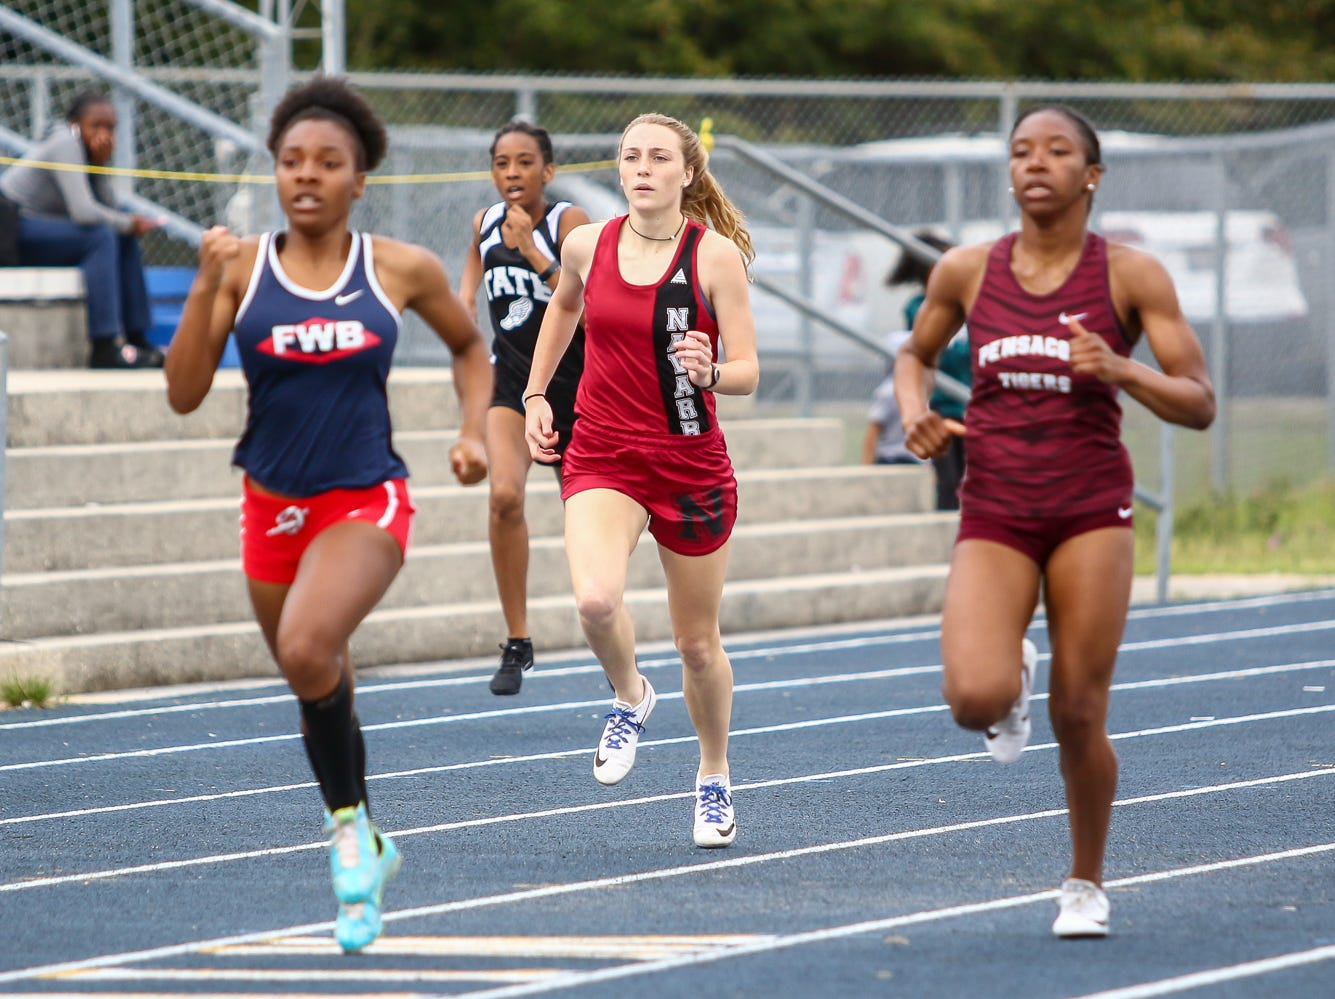 Athletes compete in the 400m dash on Saturday, March 9, 2019, during the Aggie Invitational at Washington High School.